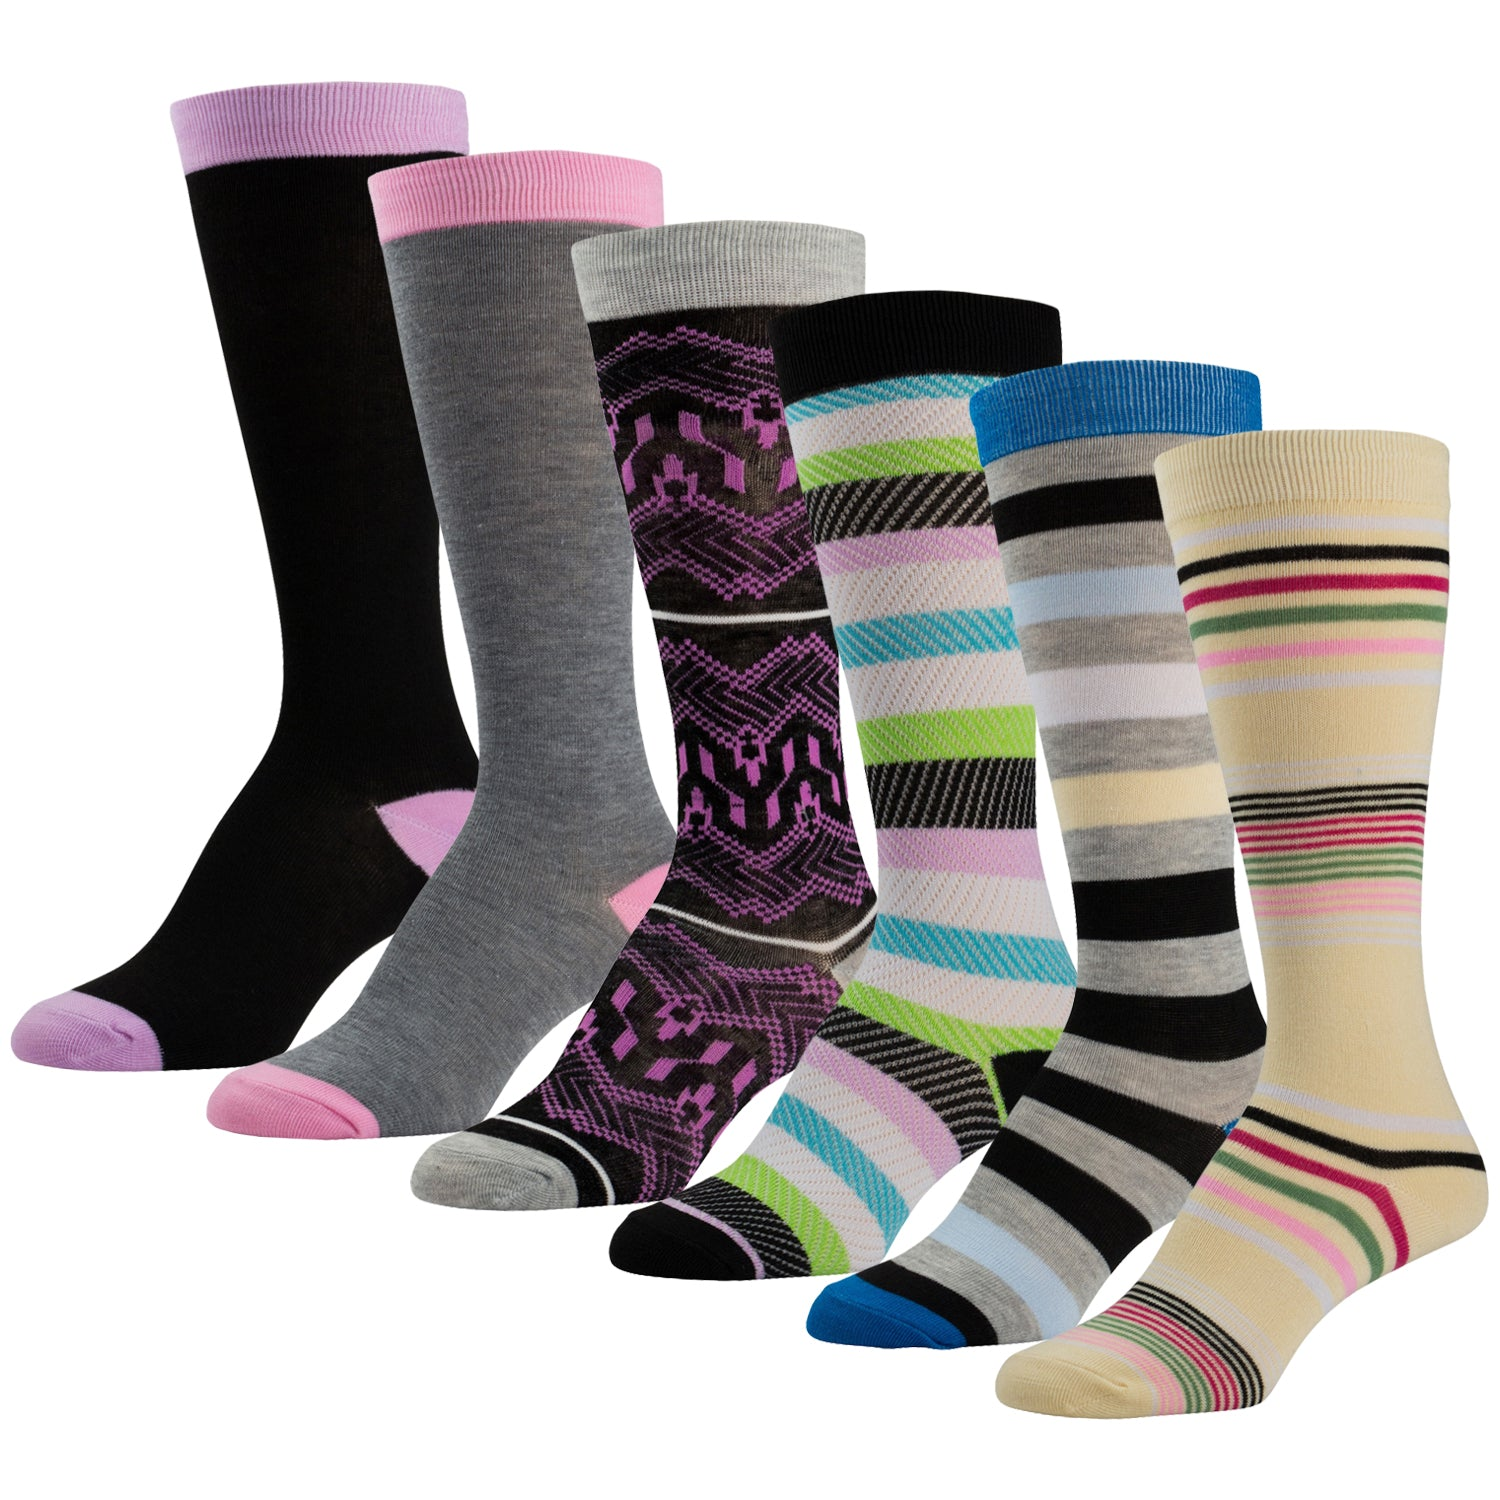 6 Pairs of Colorful Knee High Socks Solids and Patterned